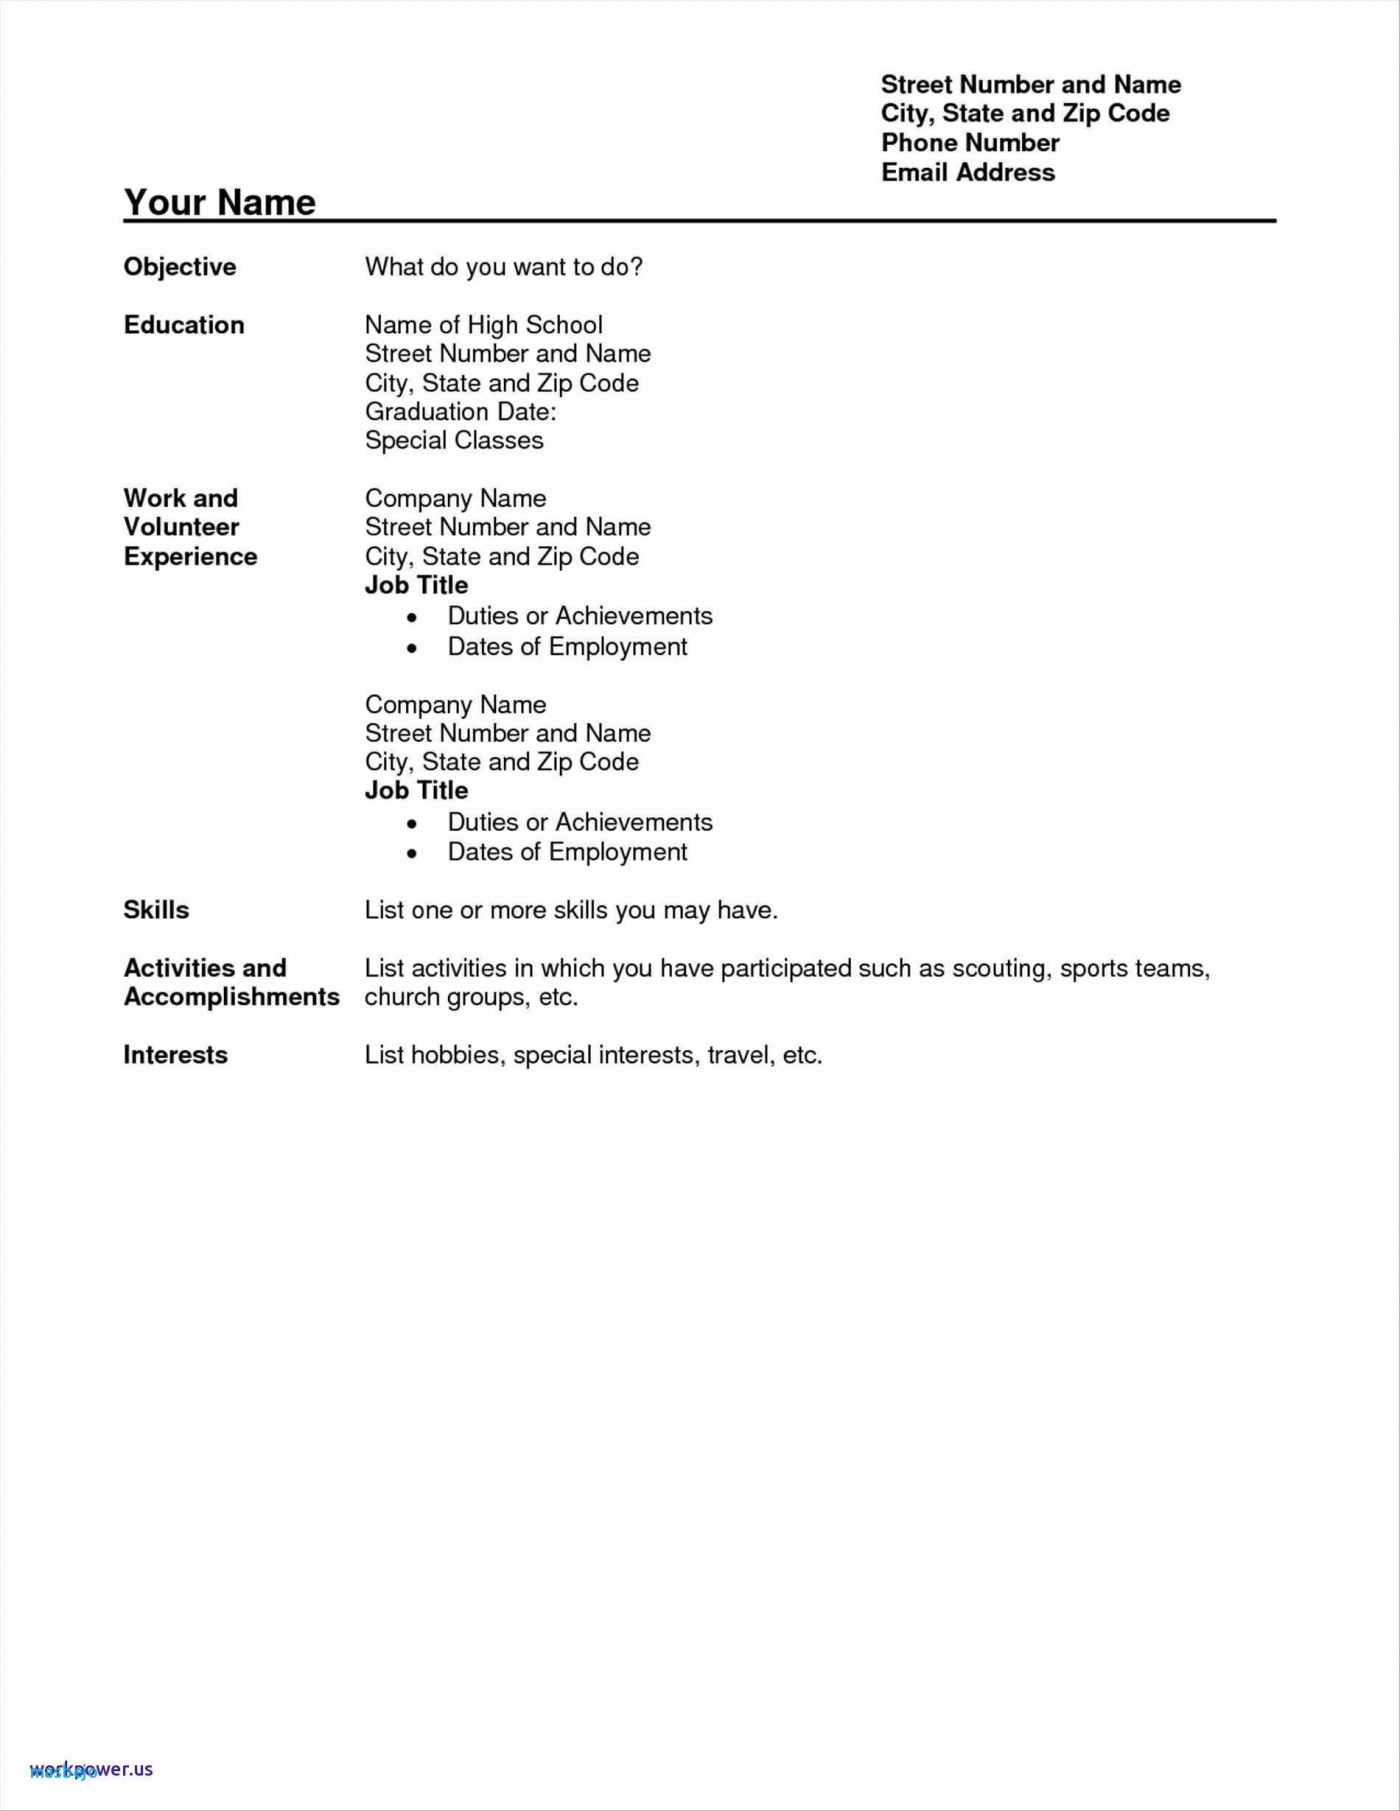 Examples Of How To Write A Resume With No Experience لم يسبق له